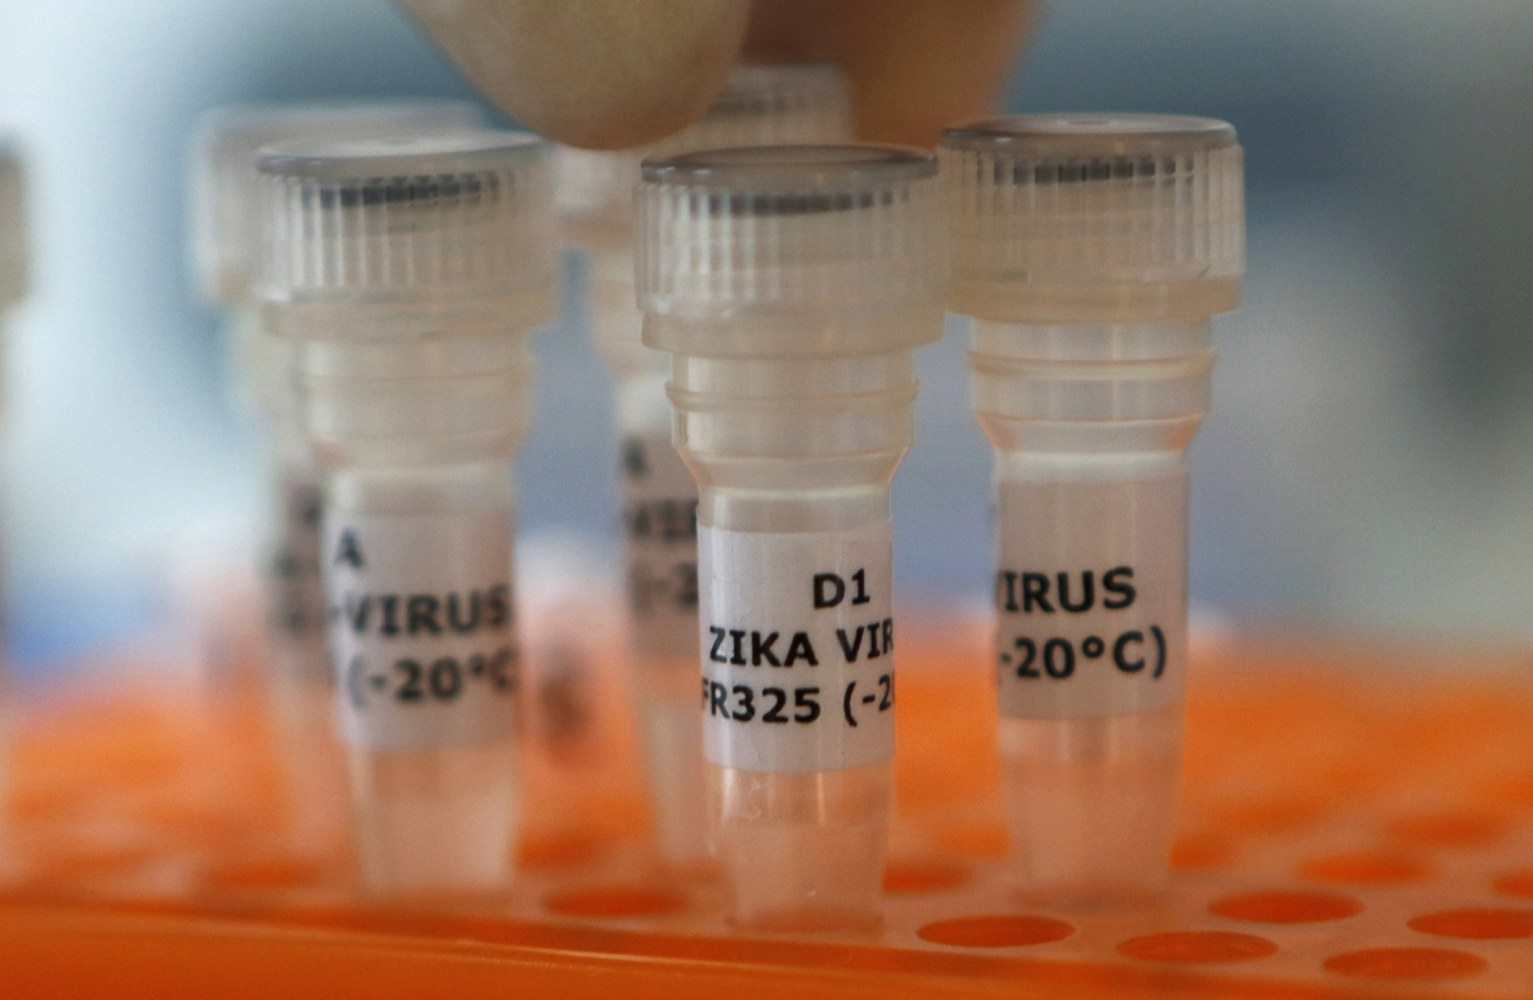 Sperm Donations In Florida Could Be Infected With Zika, CDC Says